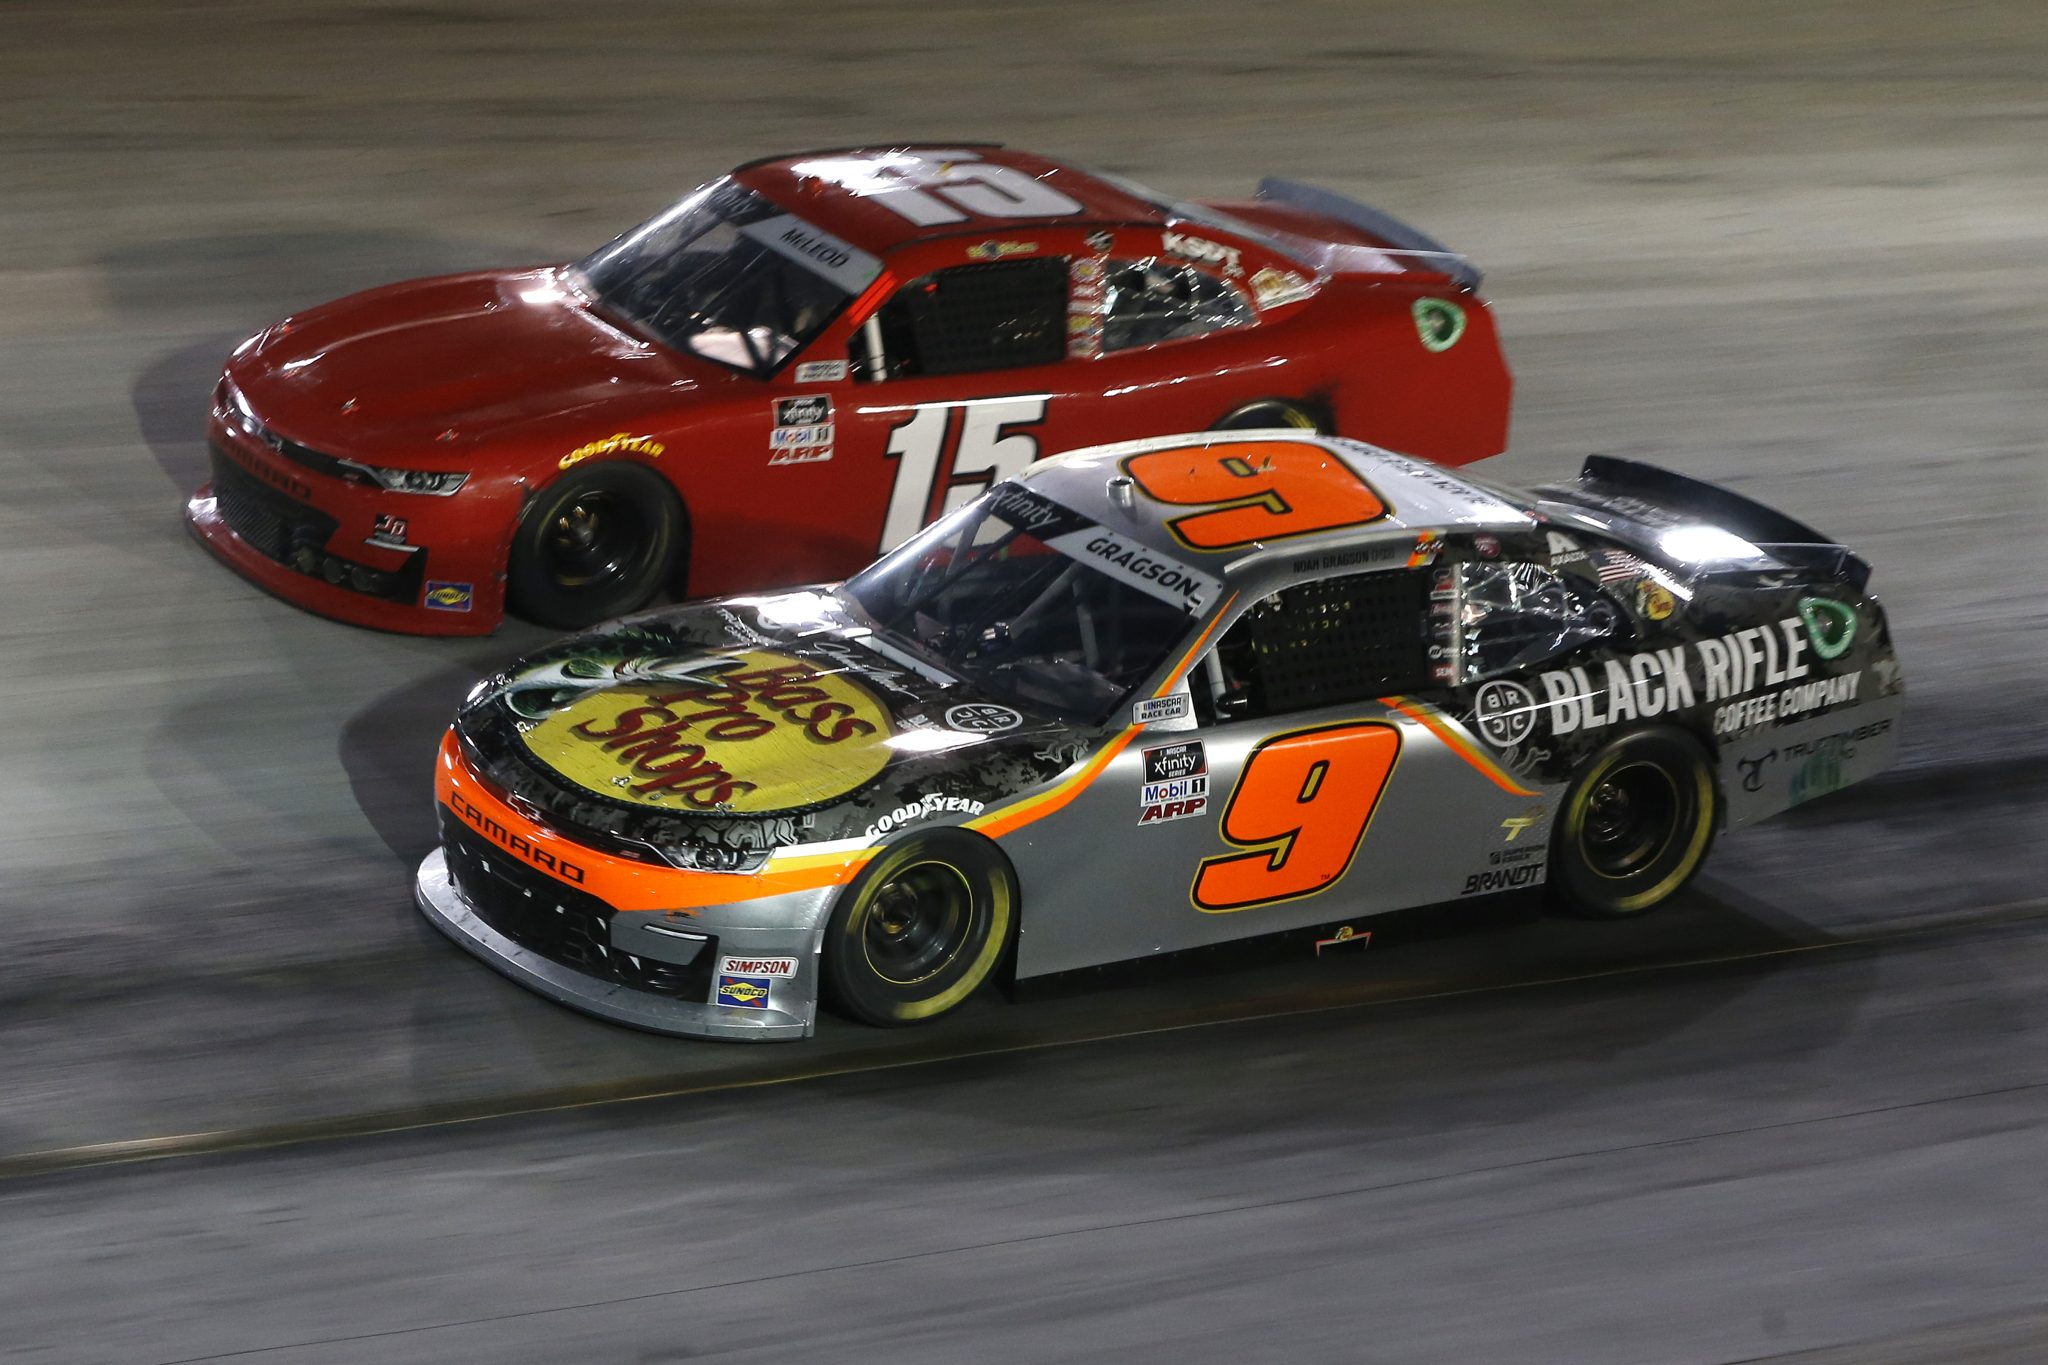 BRISTOL, TENNESSEE - SEPTEMBER 17: Noah Gragson, driver of the #9 Bass Pro Shops/TrueTimber/BRCC Chevrolet, and BJ McLeod, driver of the #15 TeamJDMotorsports.com Chevrolet, race during the NASCAR Xfinity Series Food City 300 at Bristol Motor Speedway on September 17, 2021 in Bristol, Tennessee. (Photo by Brian Lawdermilk/Getty Images) | Getty Images